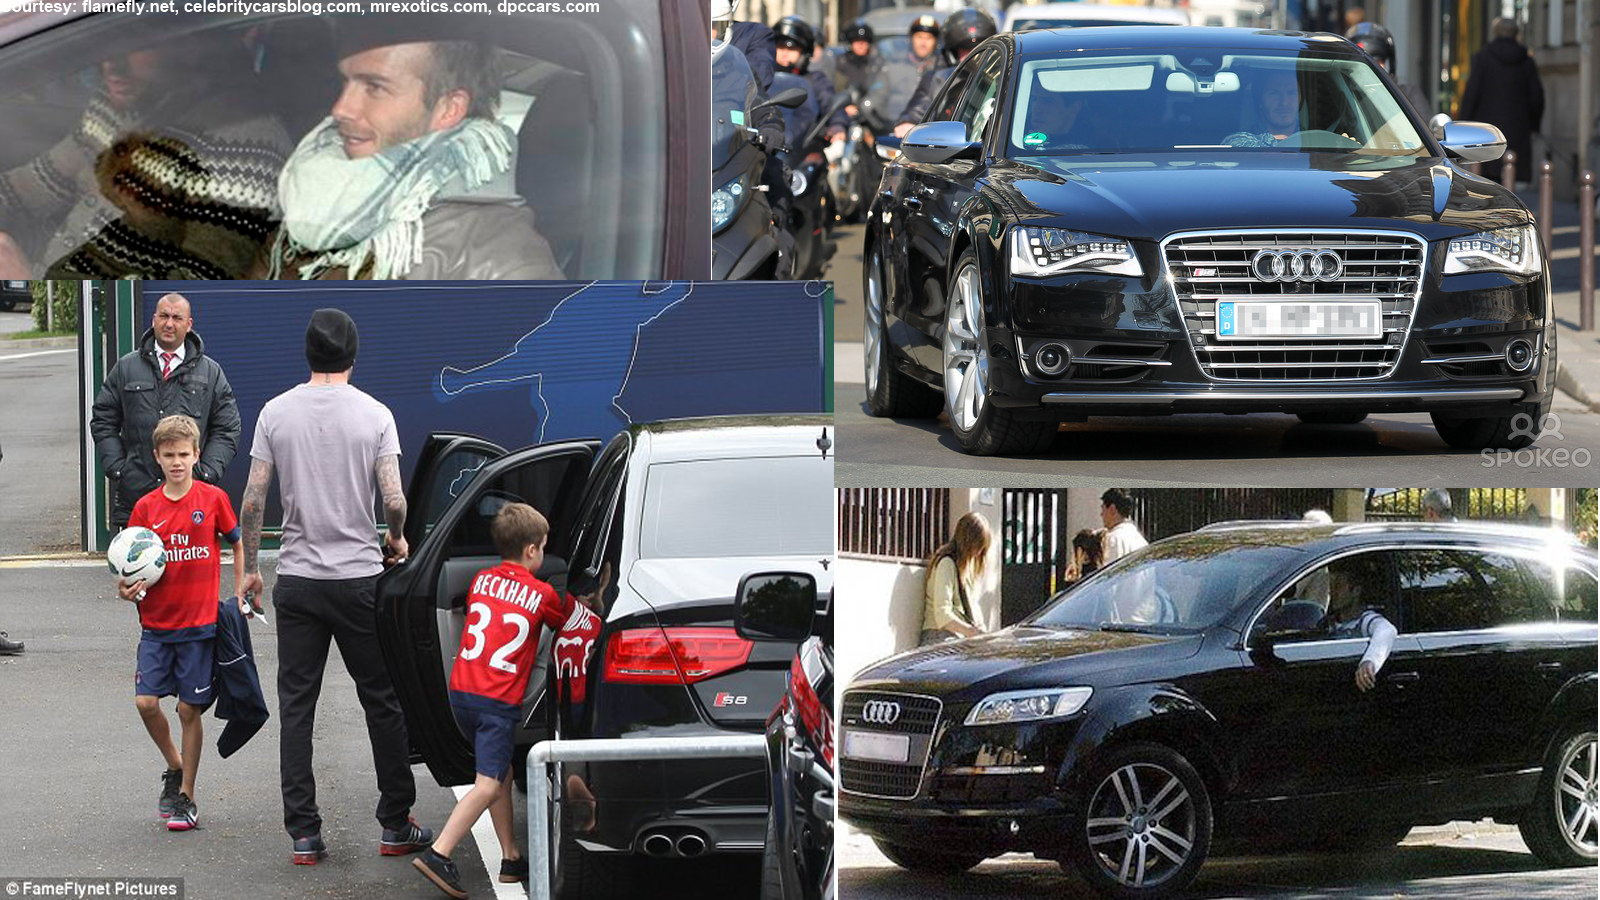 Celebrities Who Drive An Audi Audiworld - Who owns audi